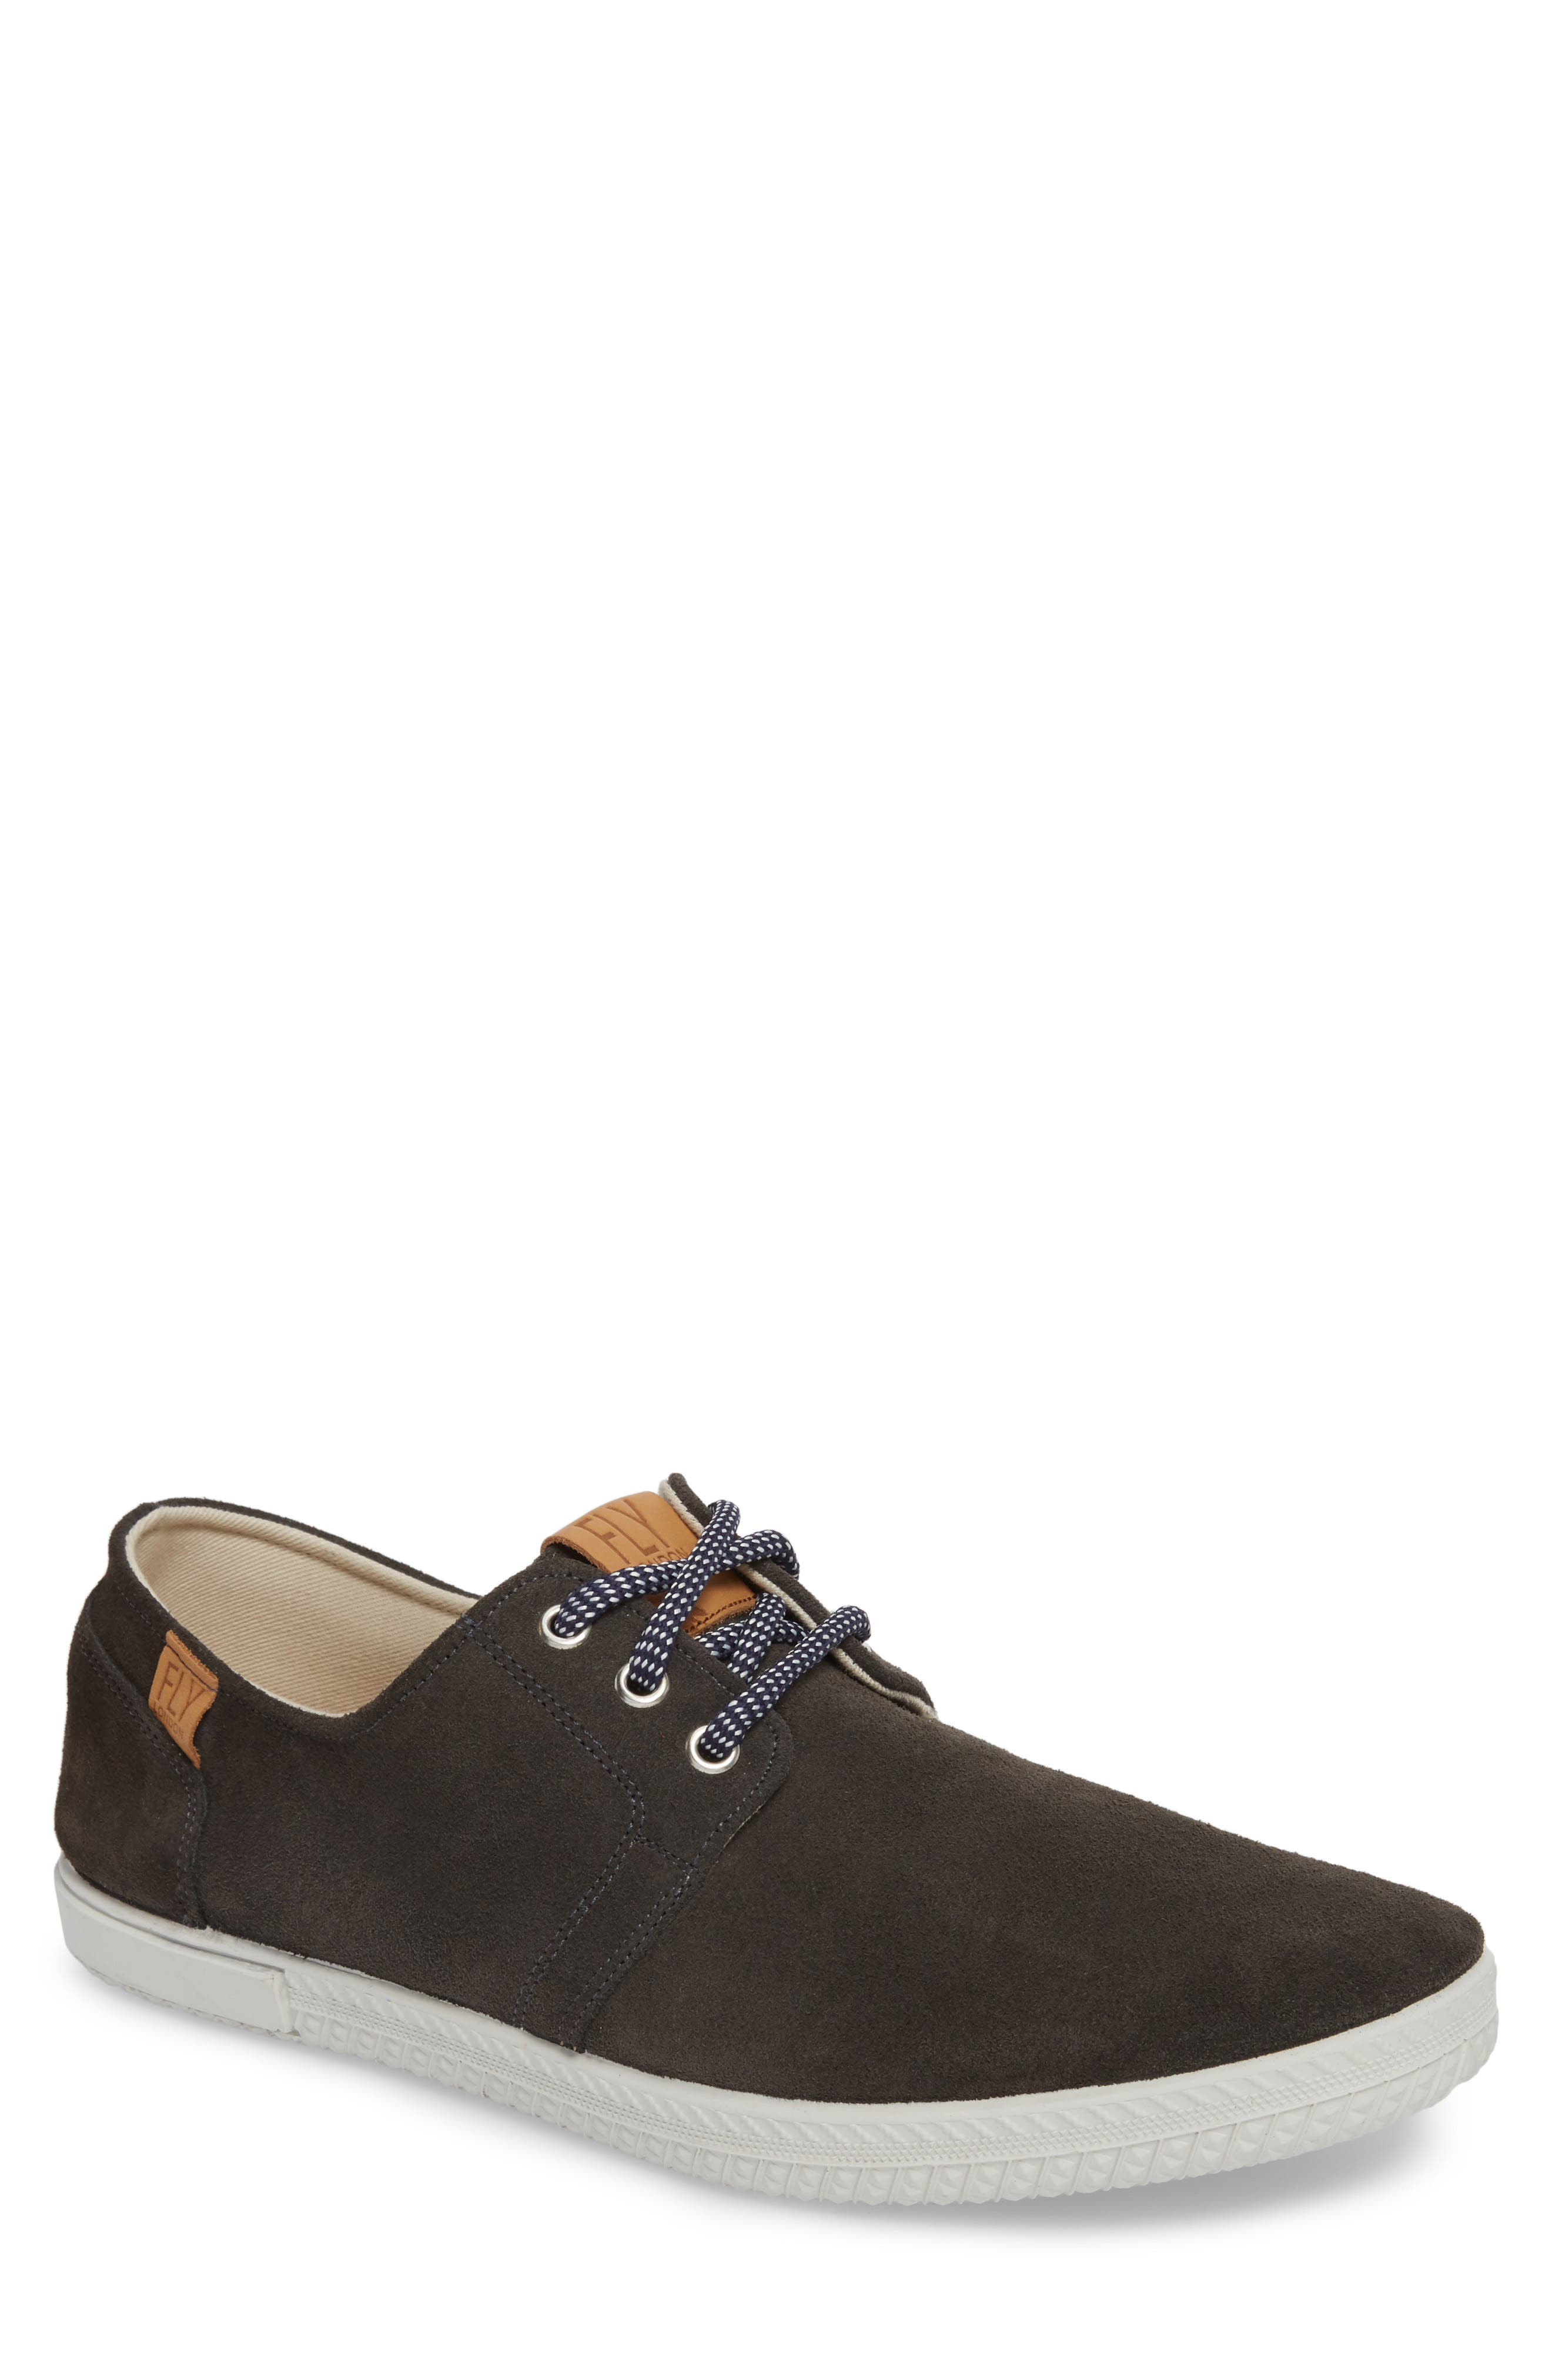 Sesh Low Top Sneaker,                             Main thumbnail 1, color,                             Anthracite Leather